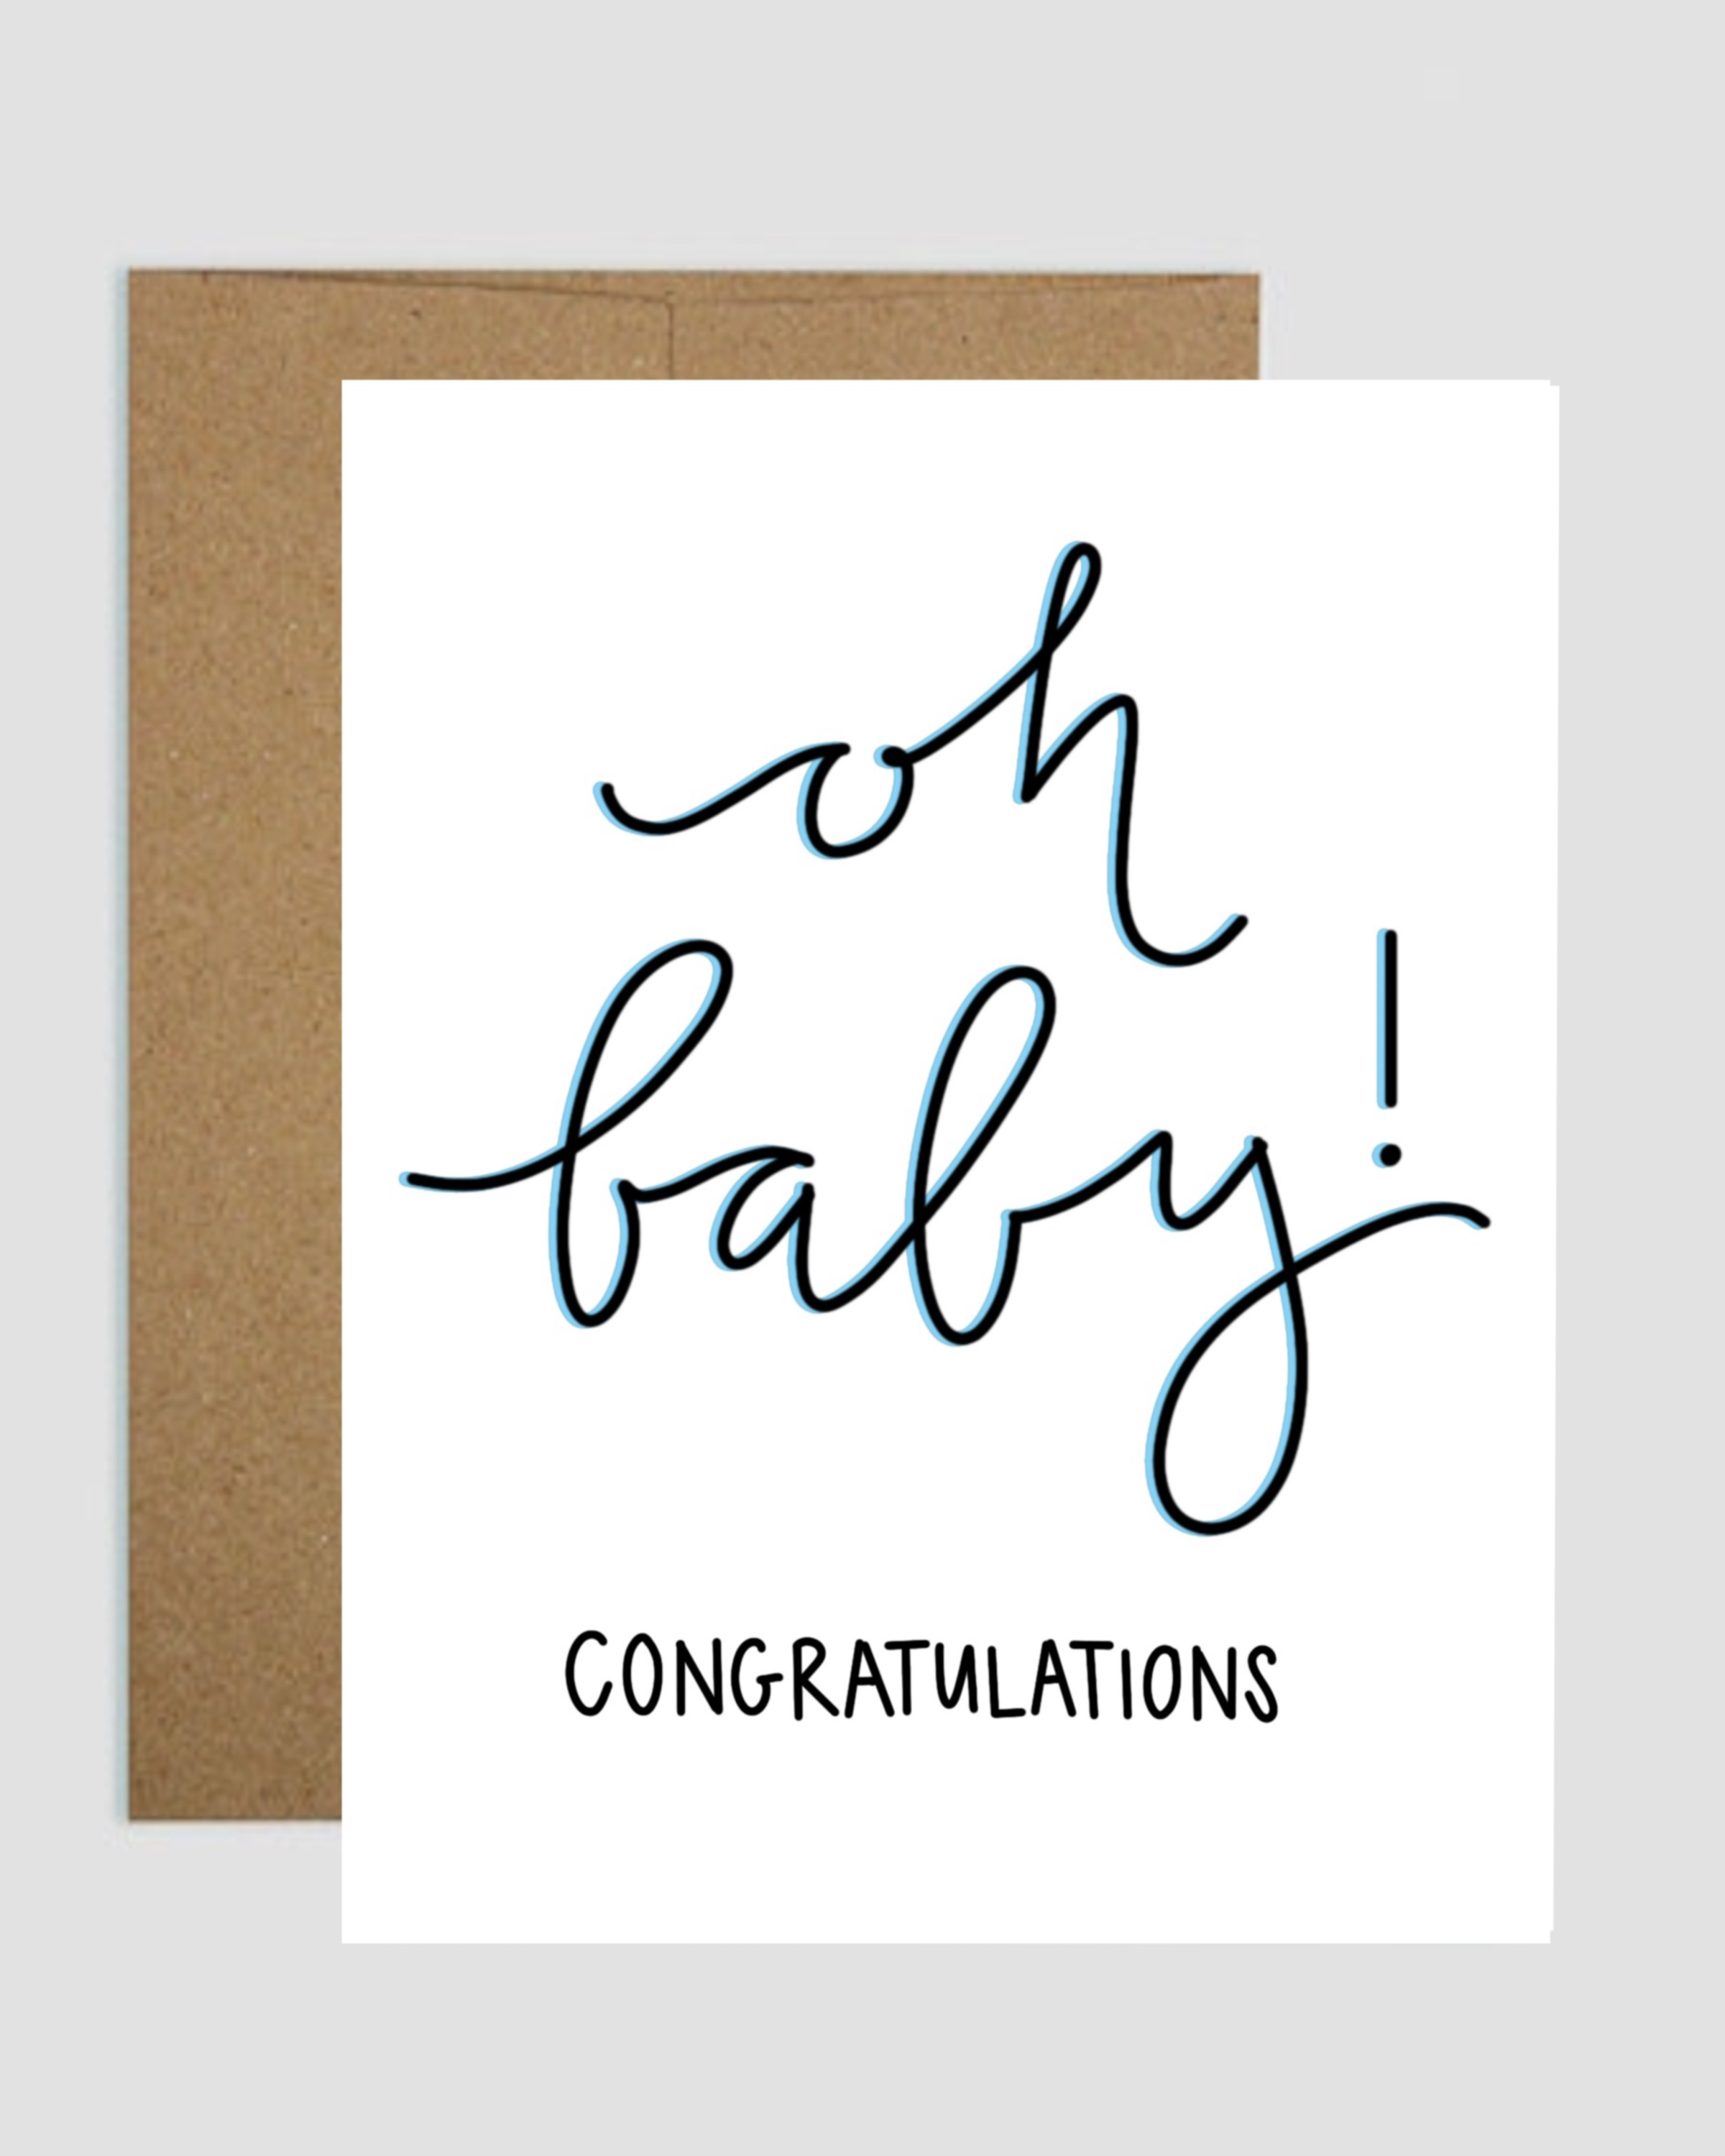 Oh Baby Greeting Card Shop Kindyl Paris Online Store Powered By